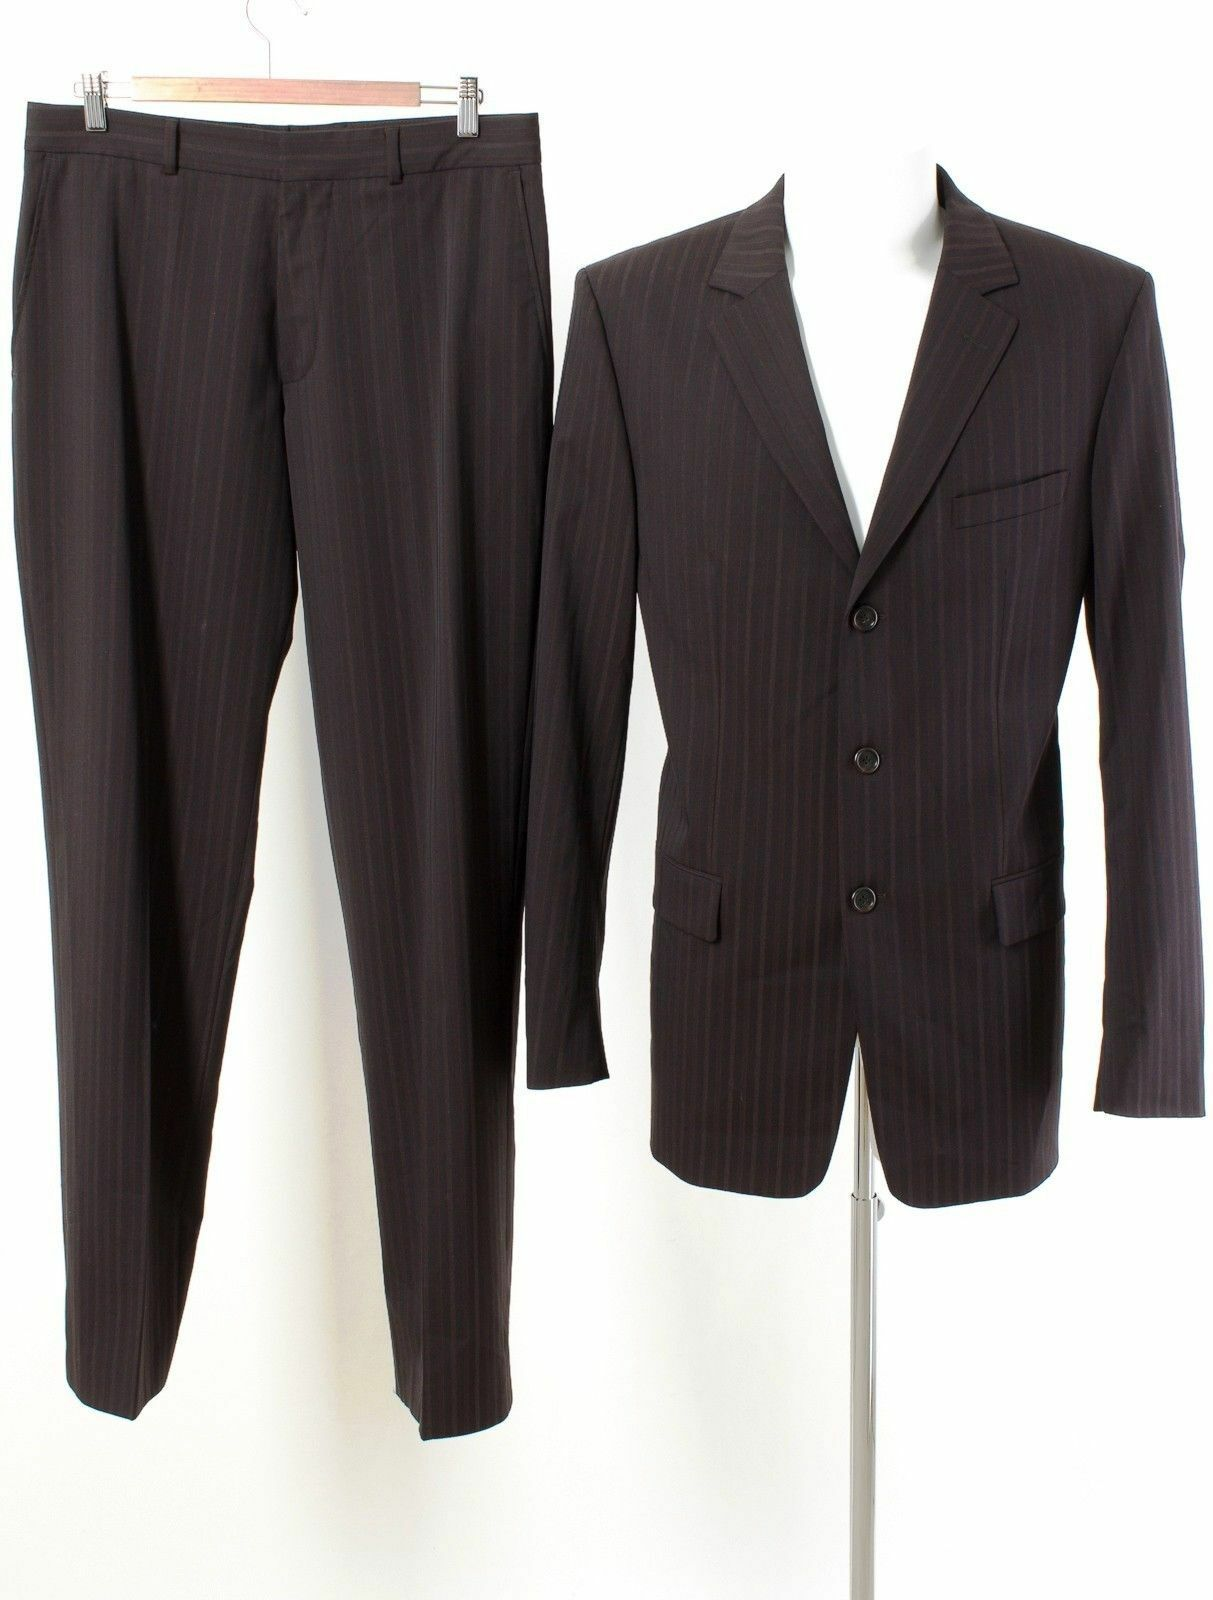 HUGO BOSS RED LABEL Anzug WIE NEU  Gr. 98 (M Schlank) Wolle Business Suit